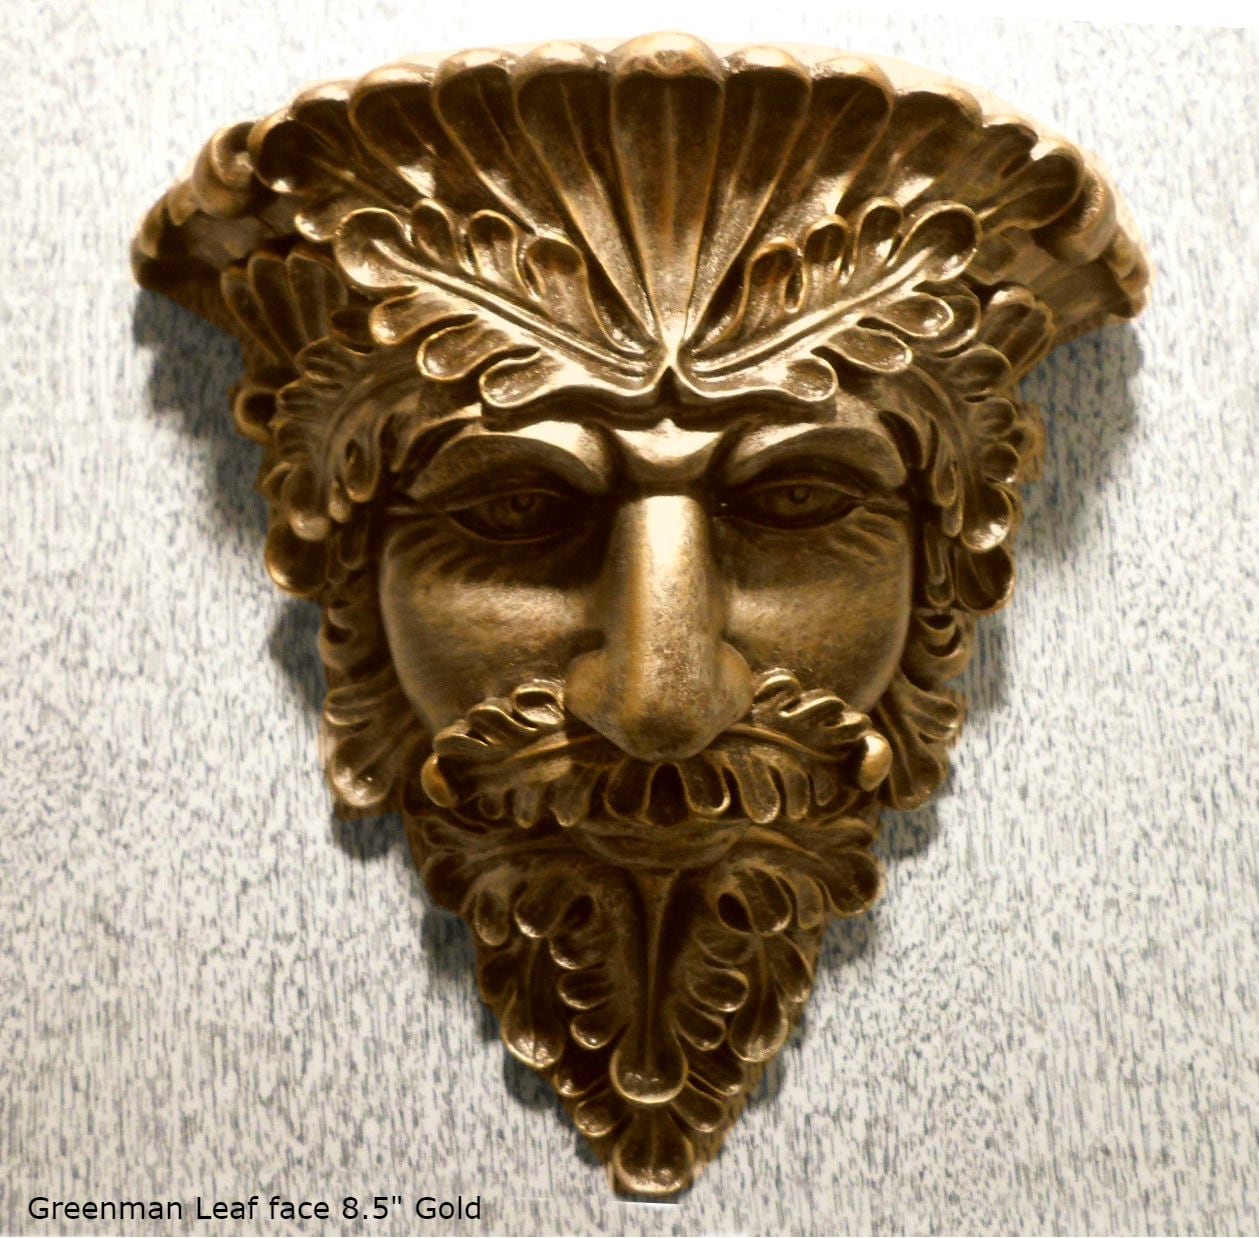 Greenman Leaf Face Sculpture Wall Plaque Art Neo Mfgcom Etsy 85 Home Garden Decor